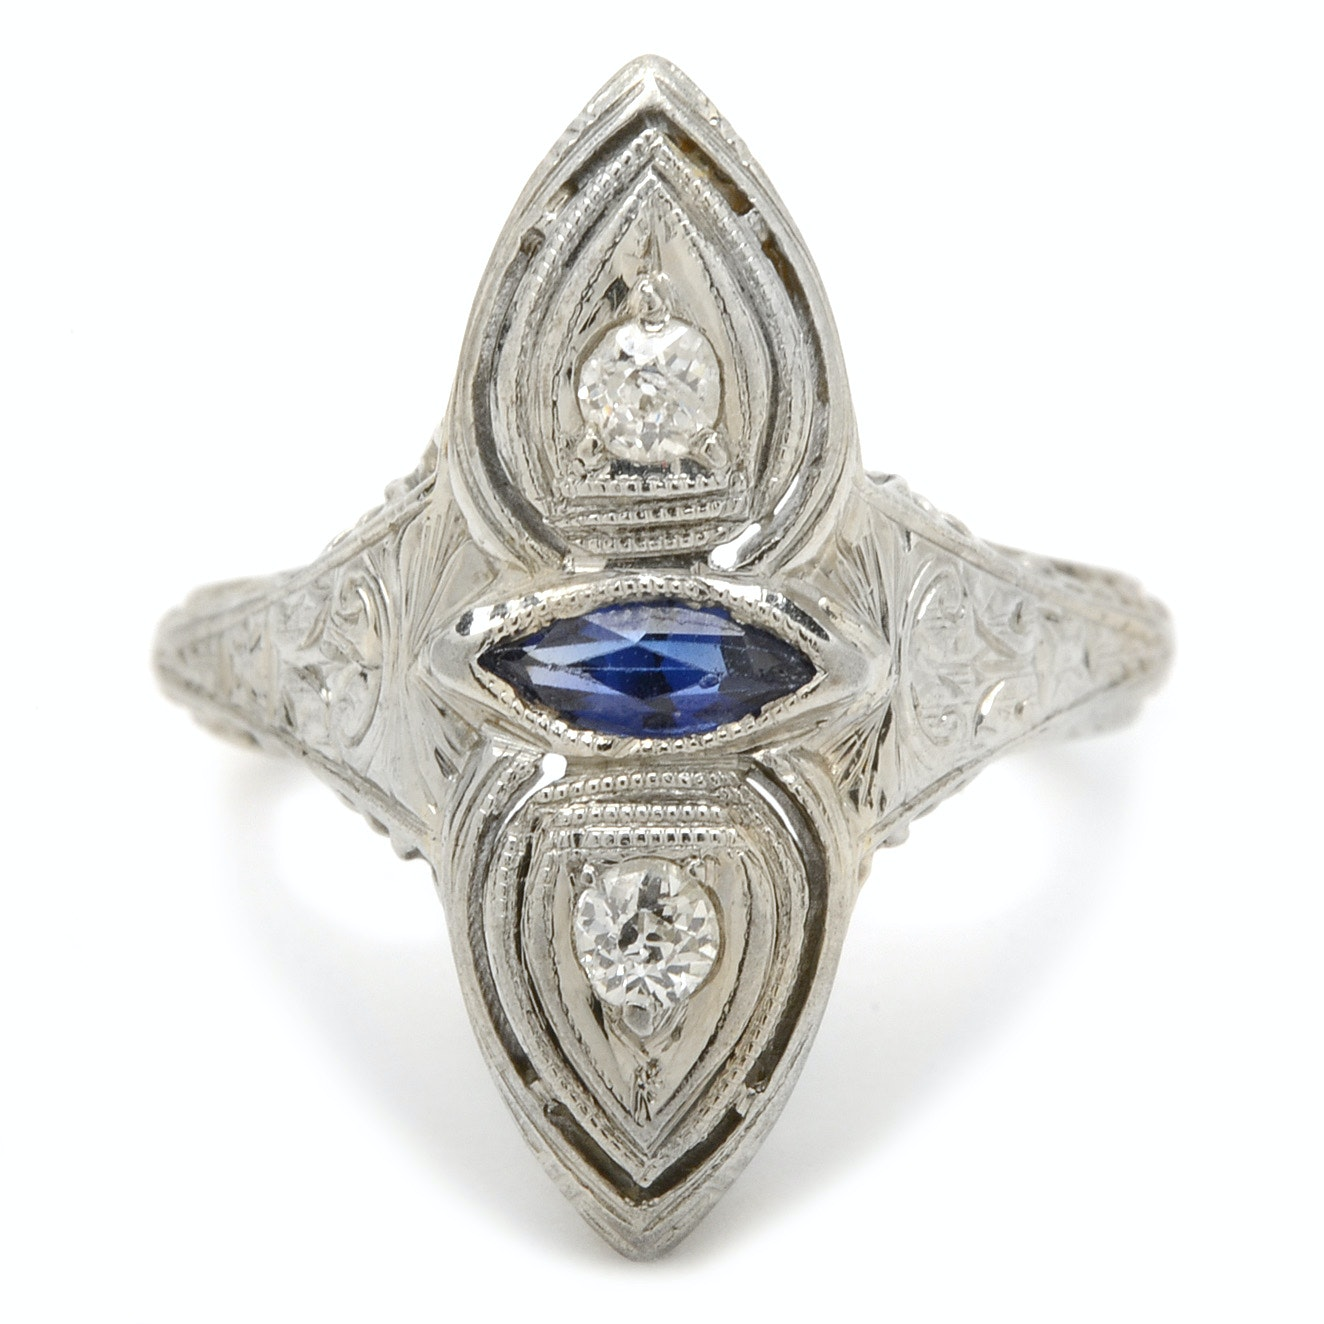 Vintage Belais 18K White Gold, Diamond and Sapphire Ring